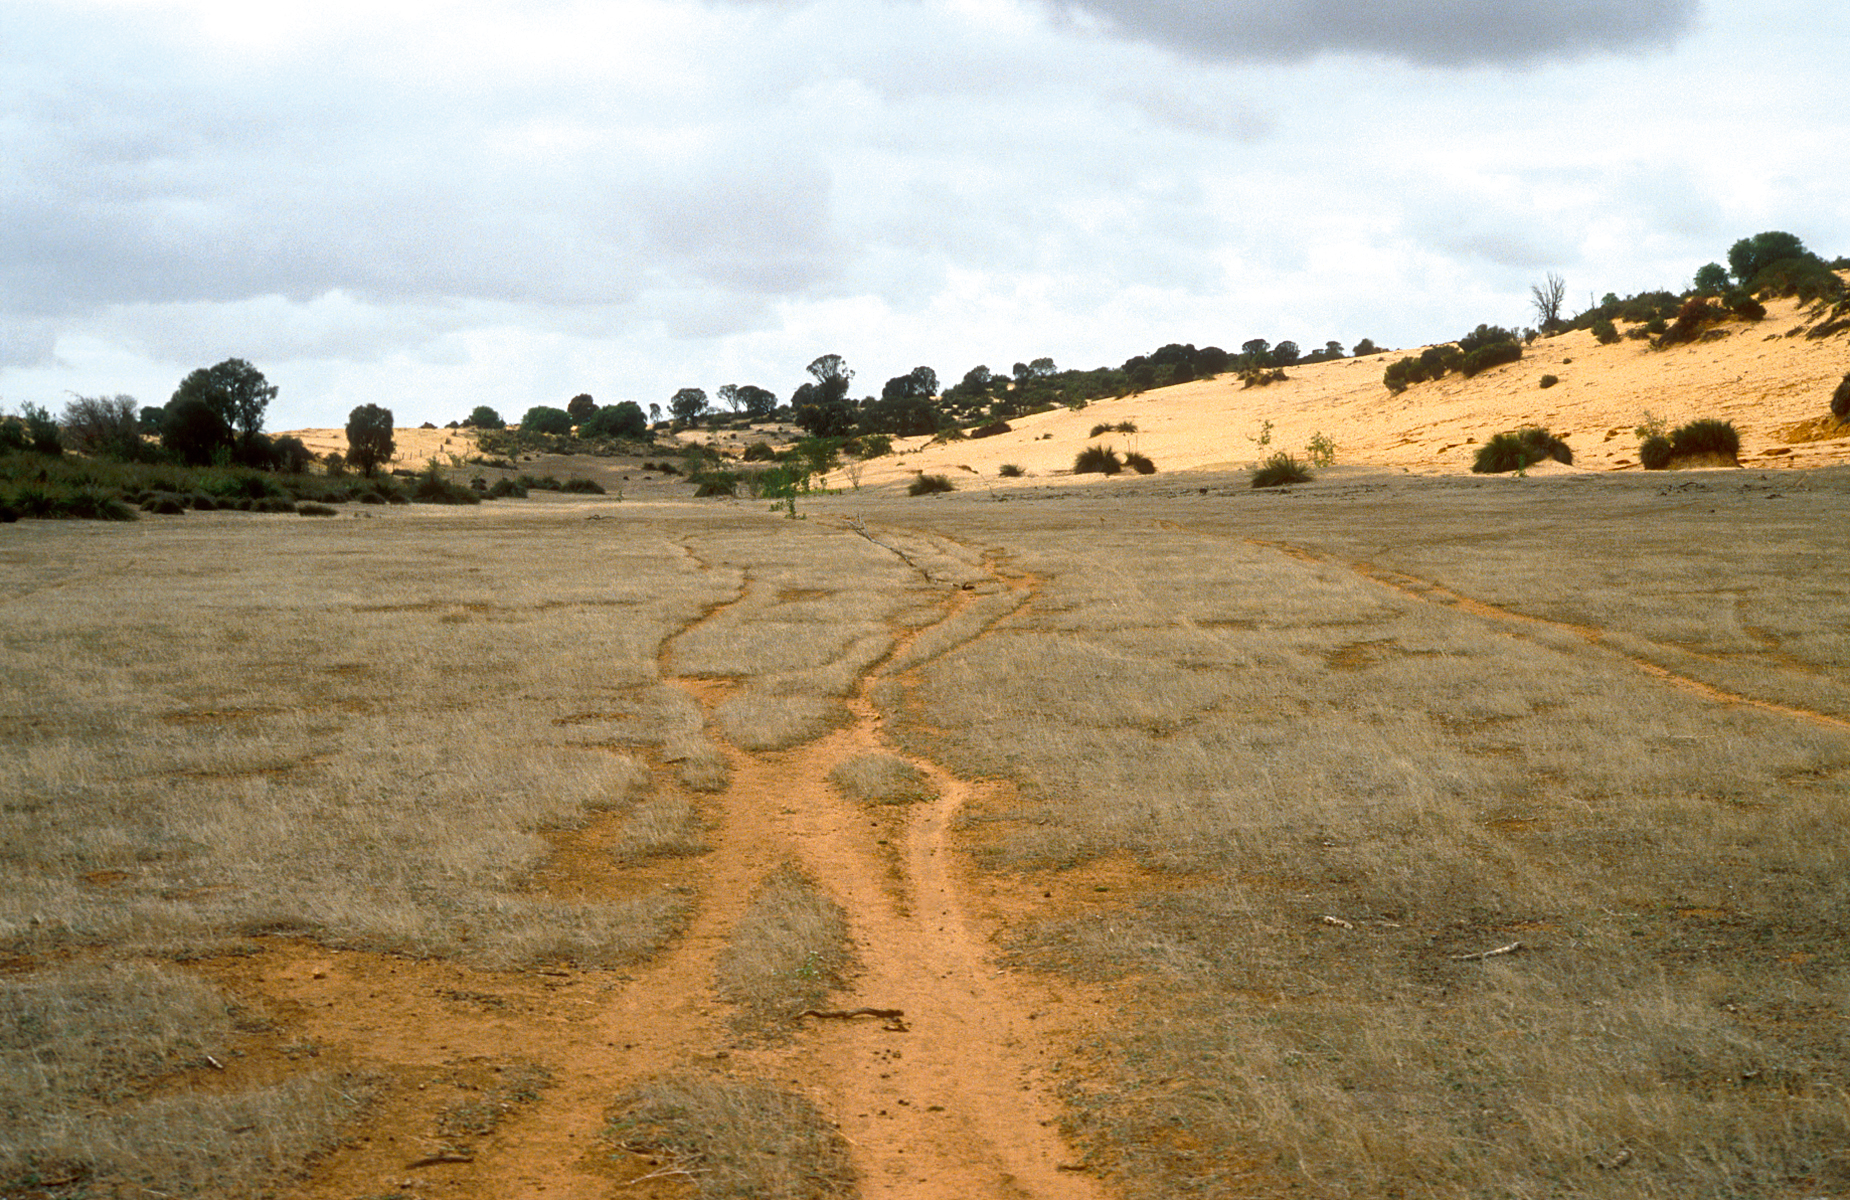 Area cleared of Mallee bushland for grazing and cropping on the Cooke Plains, south-east of Tailem Bend, SA. 1992. (Source: John Coppi)